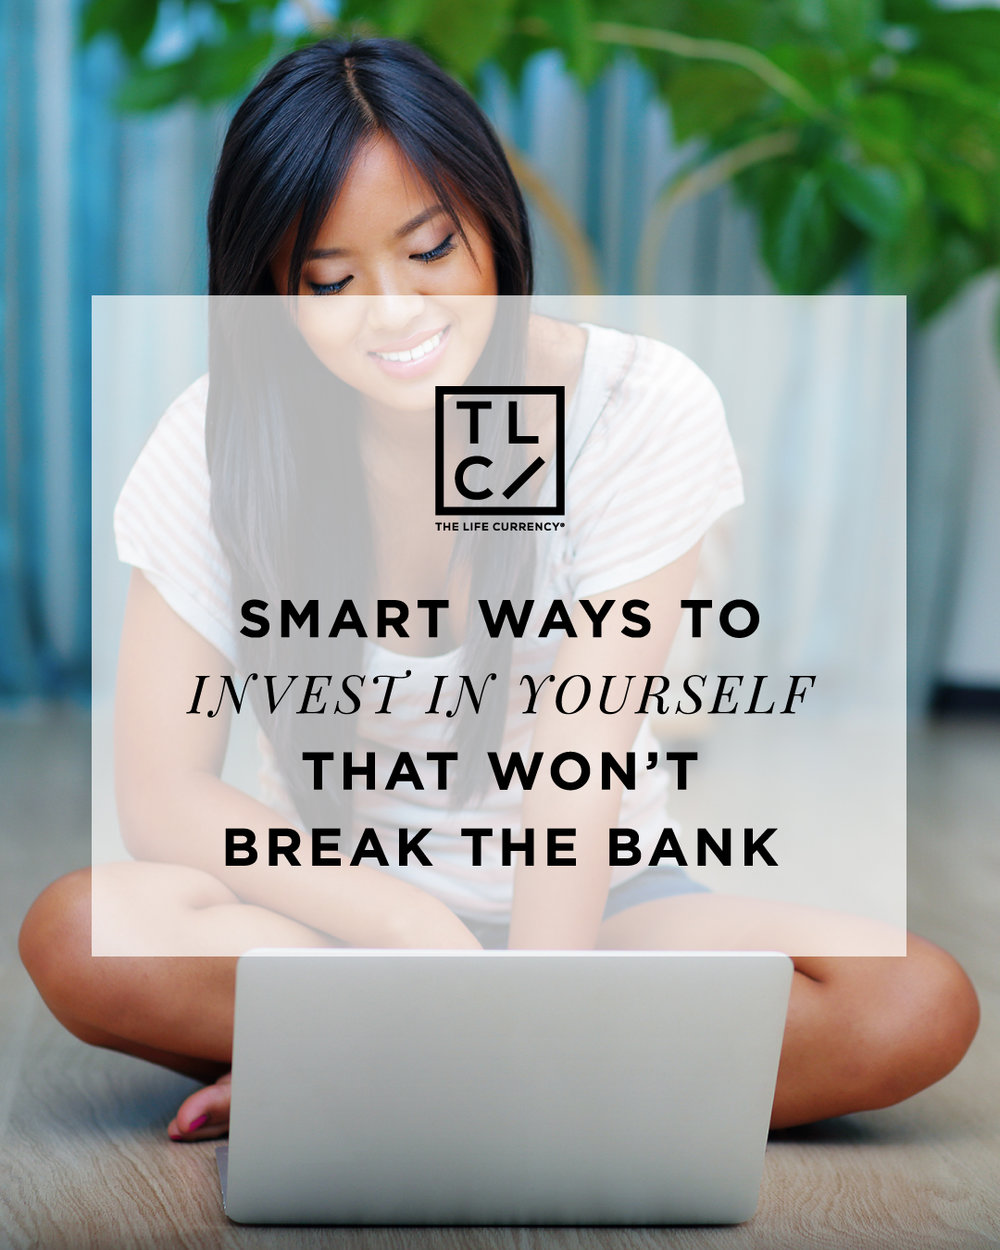 Smart Ways to Invest in Yourself That Won't Break the Bank